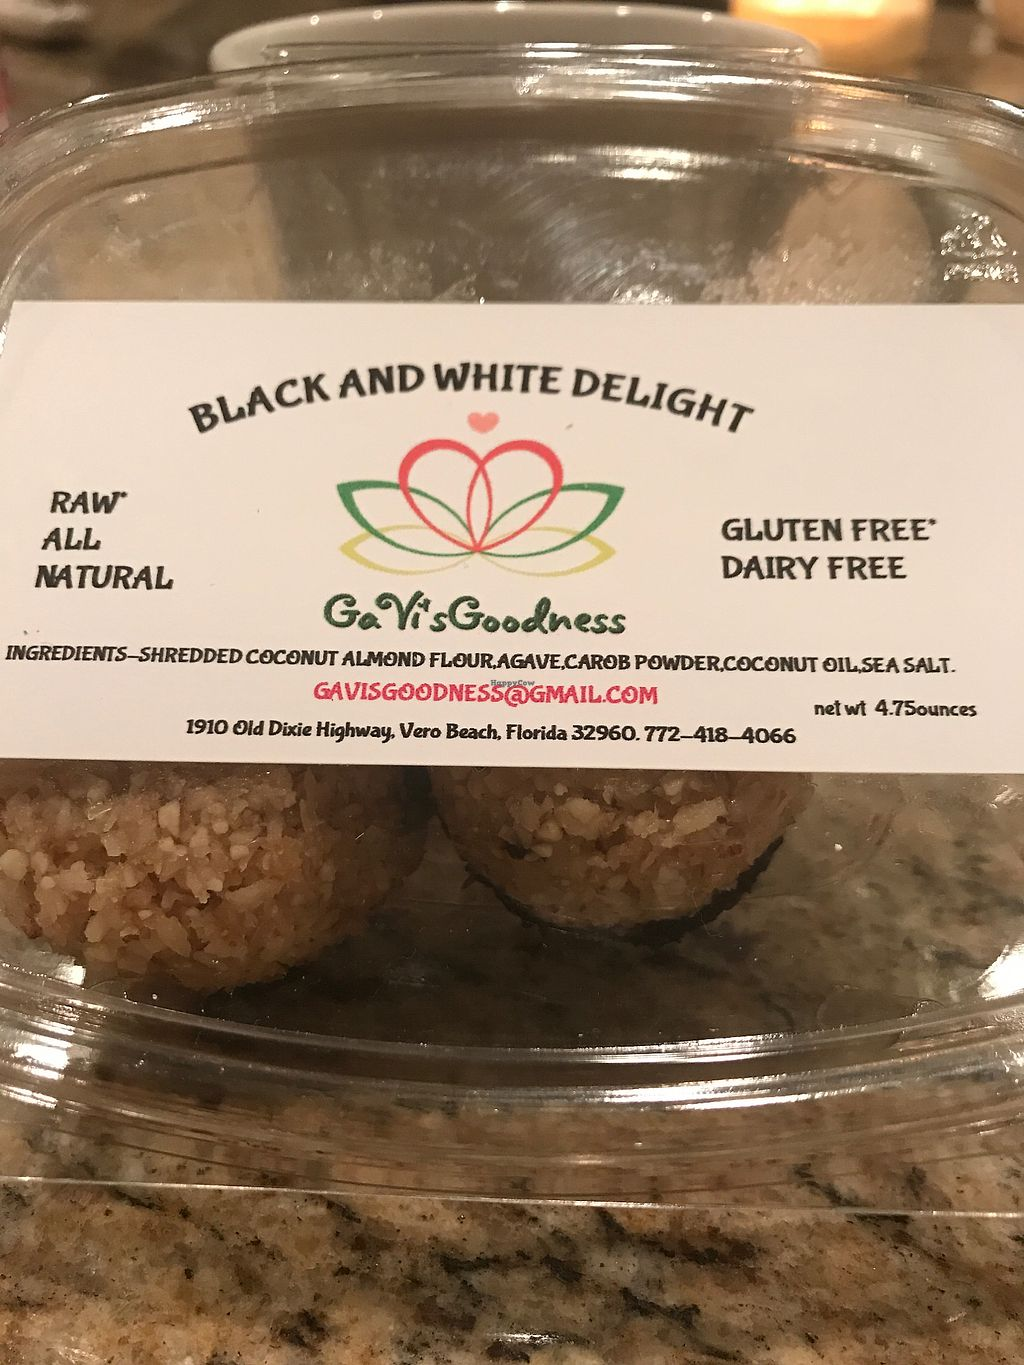 """Photo of Bowl Spot  by <a href=""""/members/profile/peggyp"""">peggyp</a> <br/>Dessert is delicious - try these vegan macaroons  <br/> December 11, 2017  - <a href='/contact/abuse/image/105610/334486'>Report</a>"""